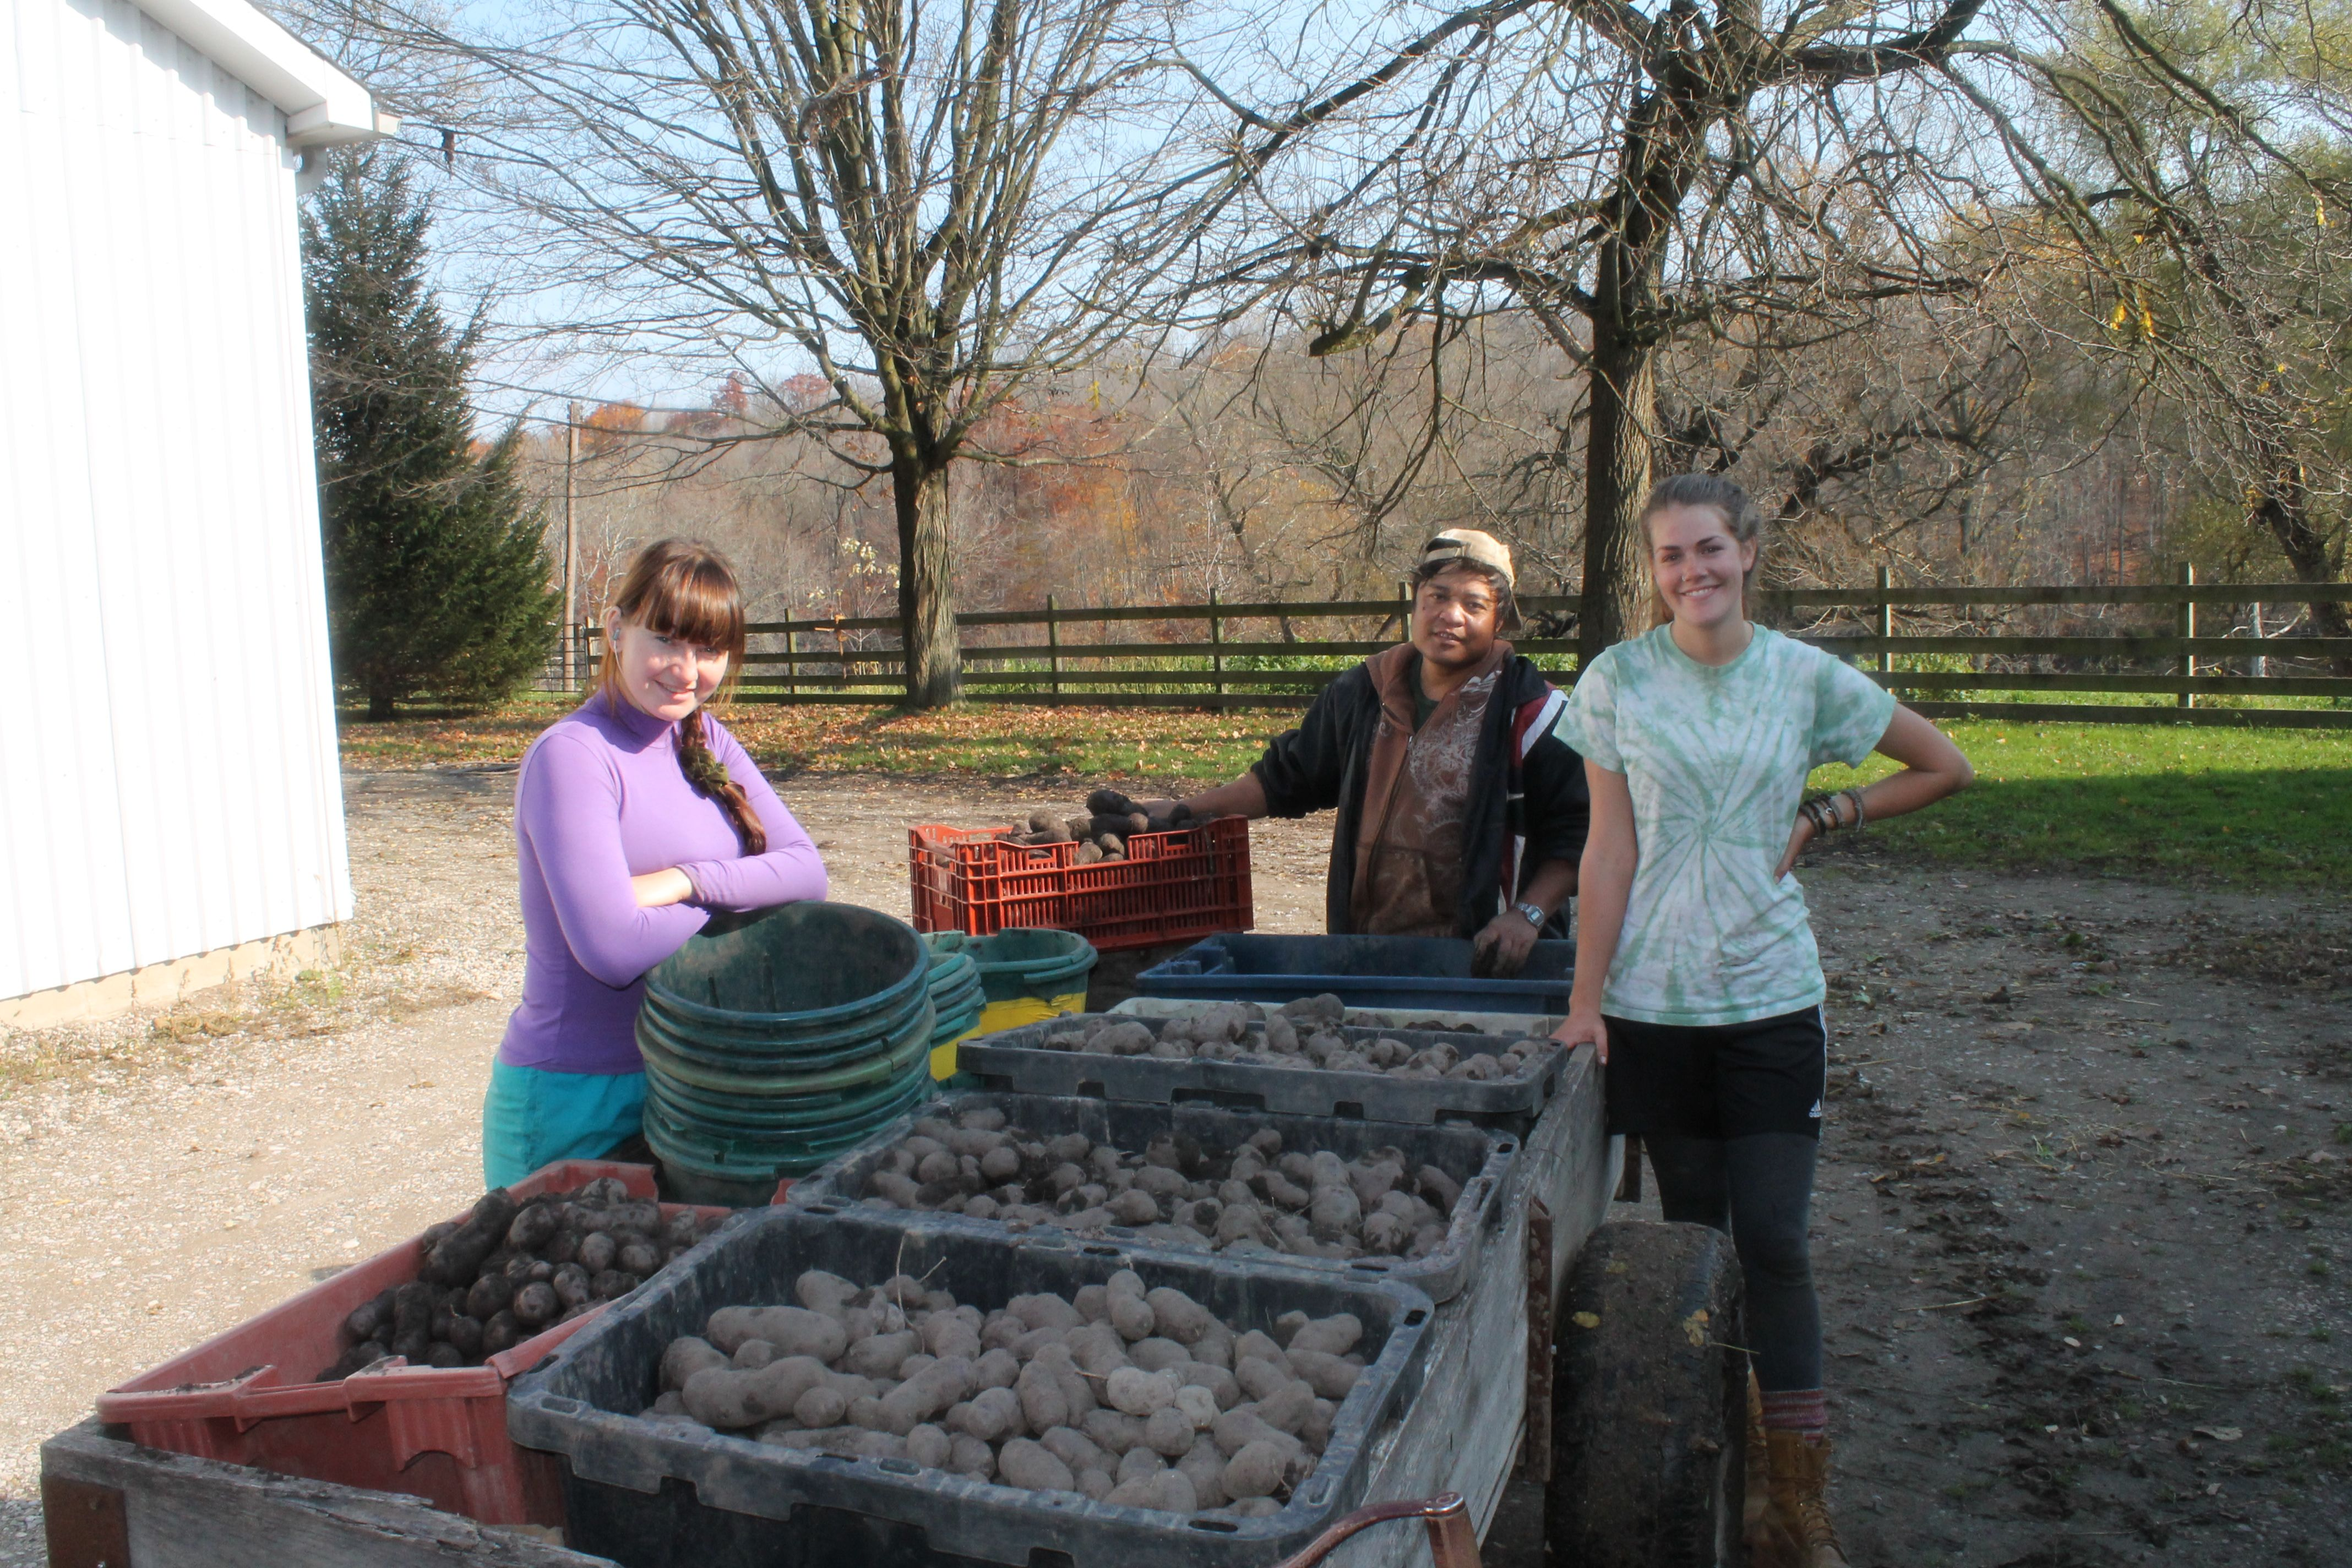 On site: blue potatoes harvested and ready to be packed at Dolway